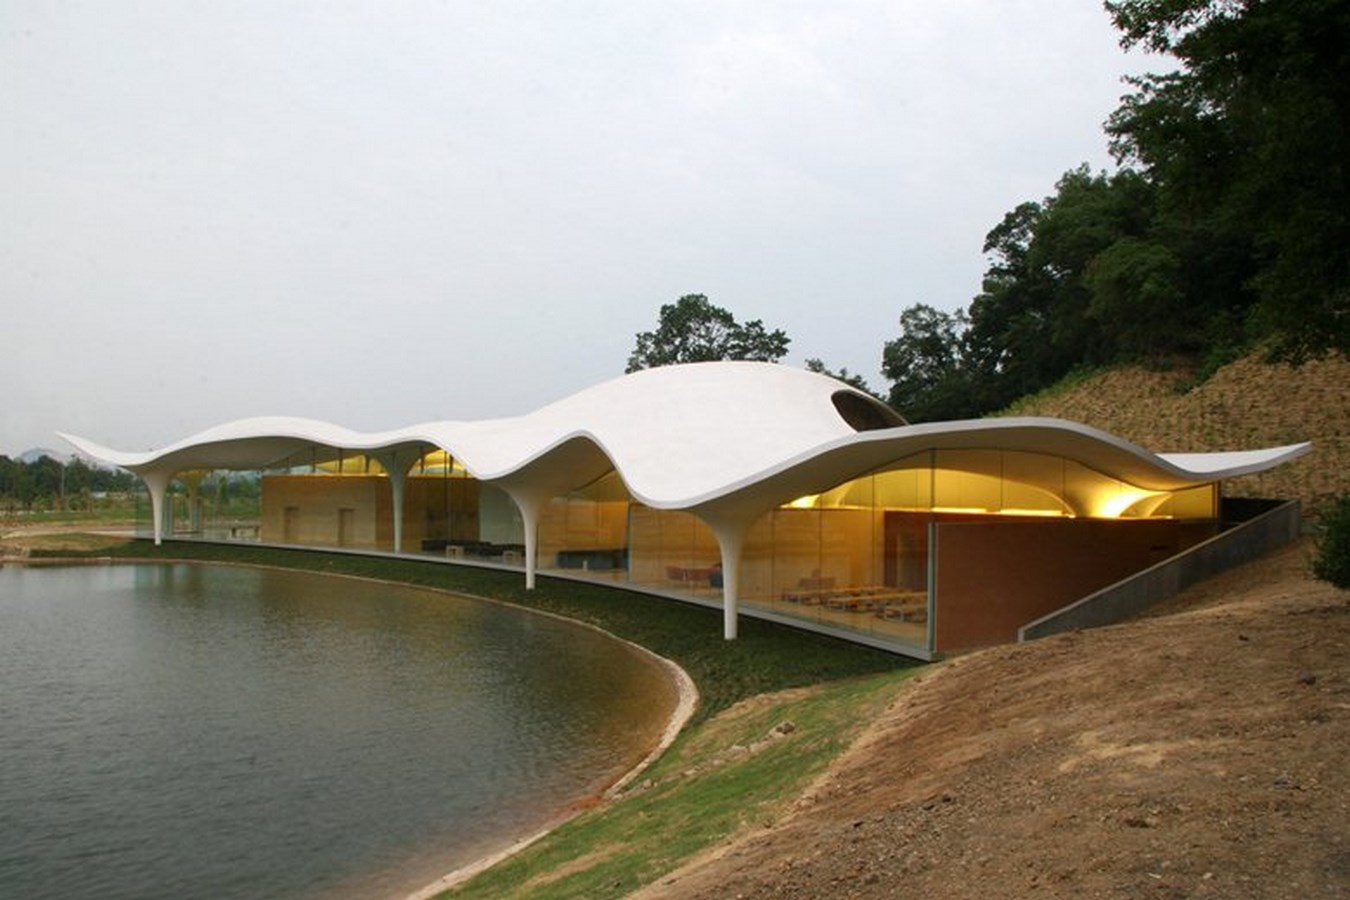 20 Hi-tech Projects by Toyo Ito Architect Every Architect should visit - Meiso no Mori Municipal Funeral Hall, Japan